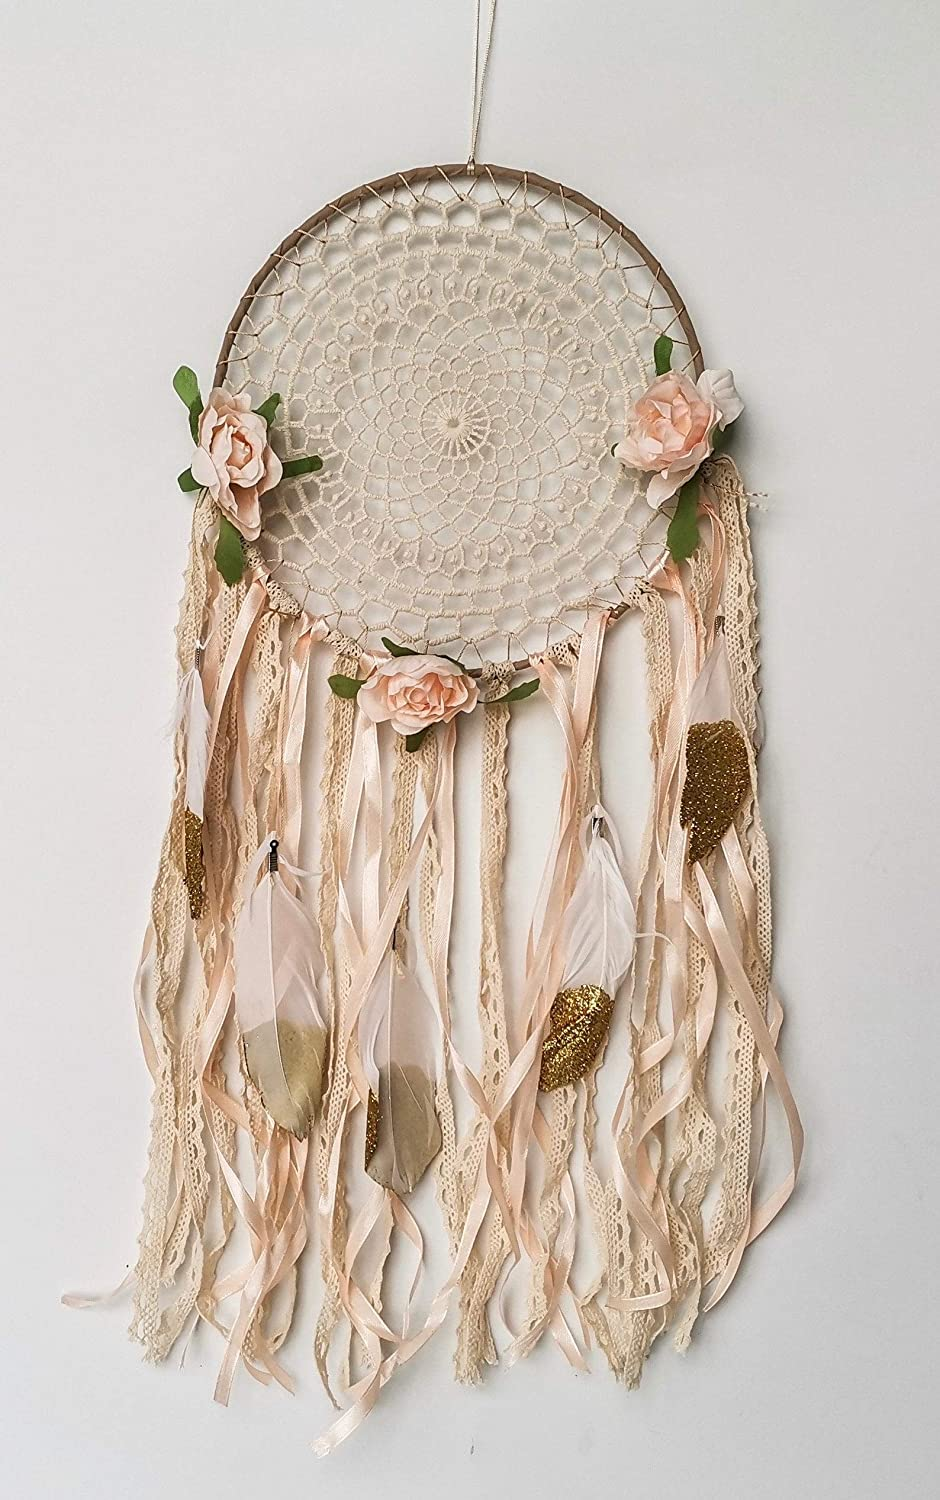 Gold Boho Decor Dream Catcher for Kids Floral Nursery Decor for Girls Bedroom Wall Decorations Peach Pink Rose Gold by So Cal Pro